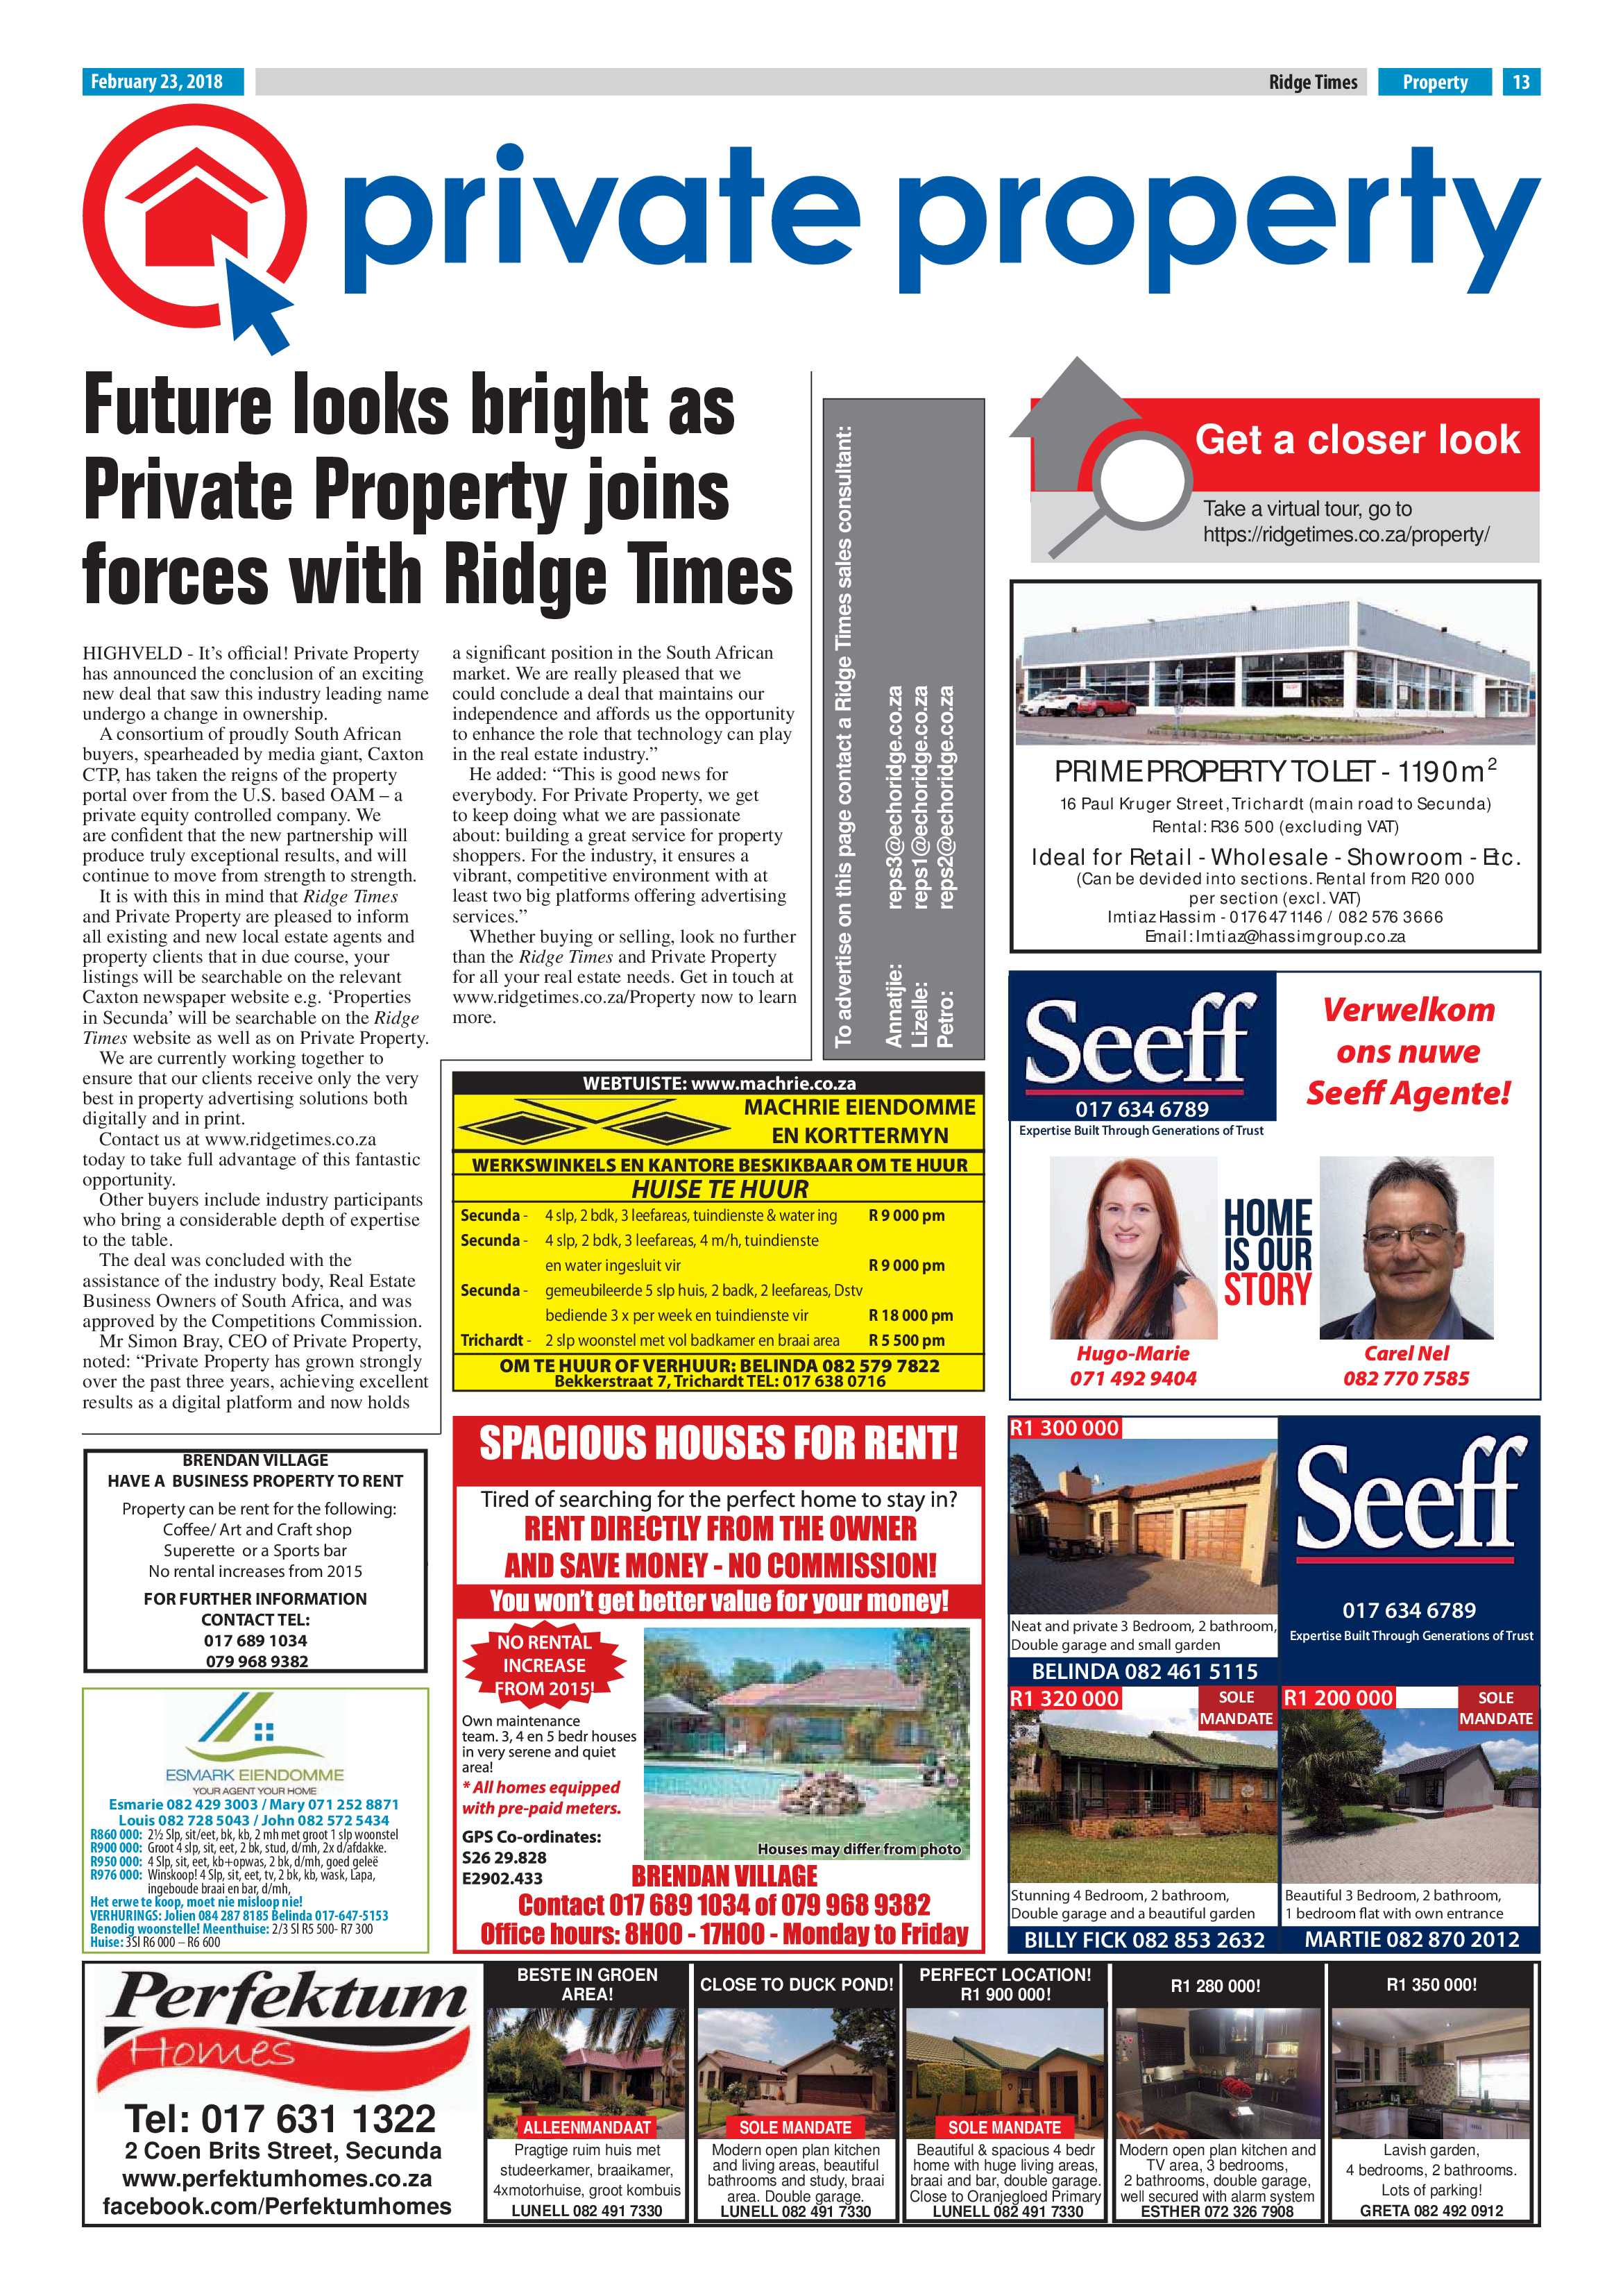 ridge-times-23-february-2018-epapers-page-13